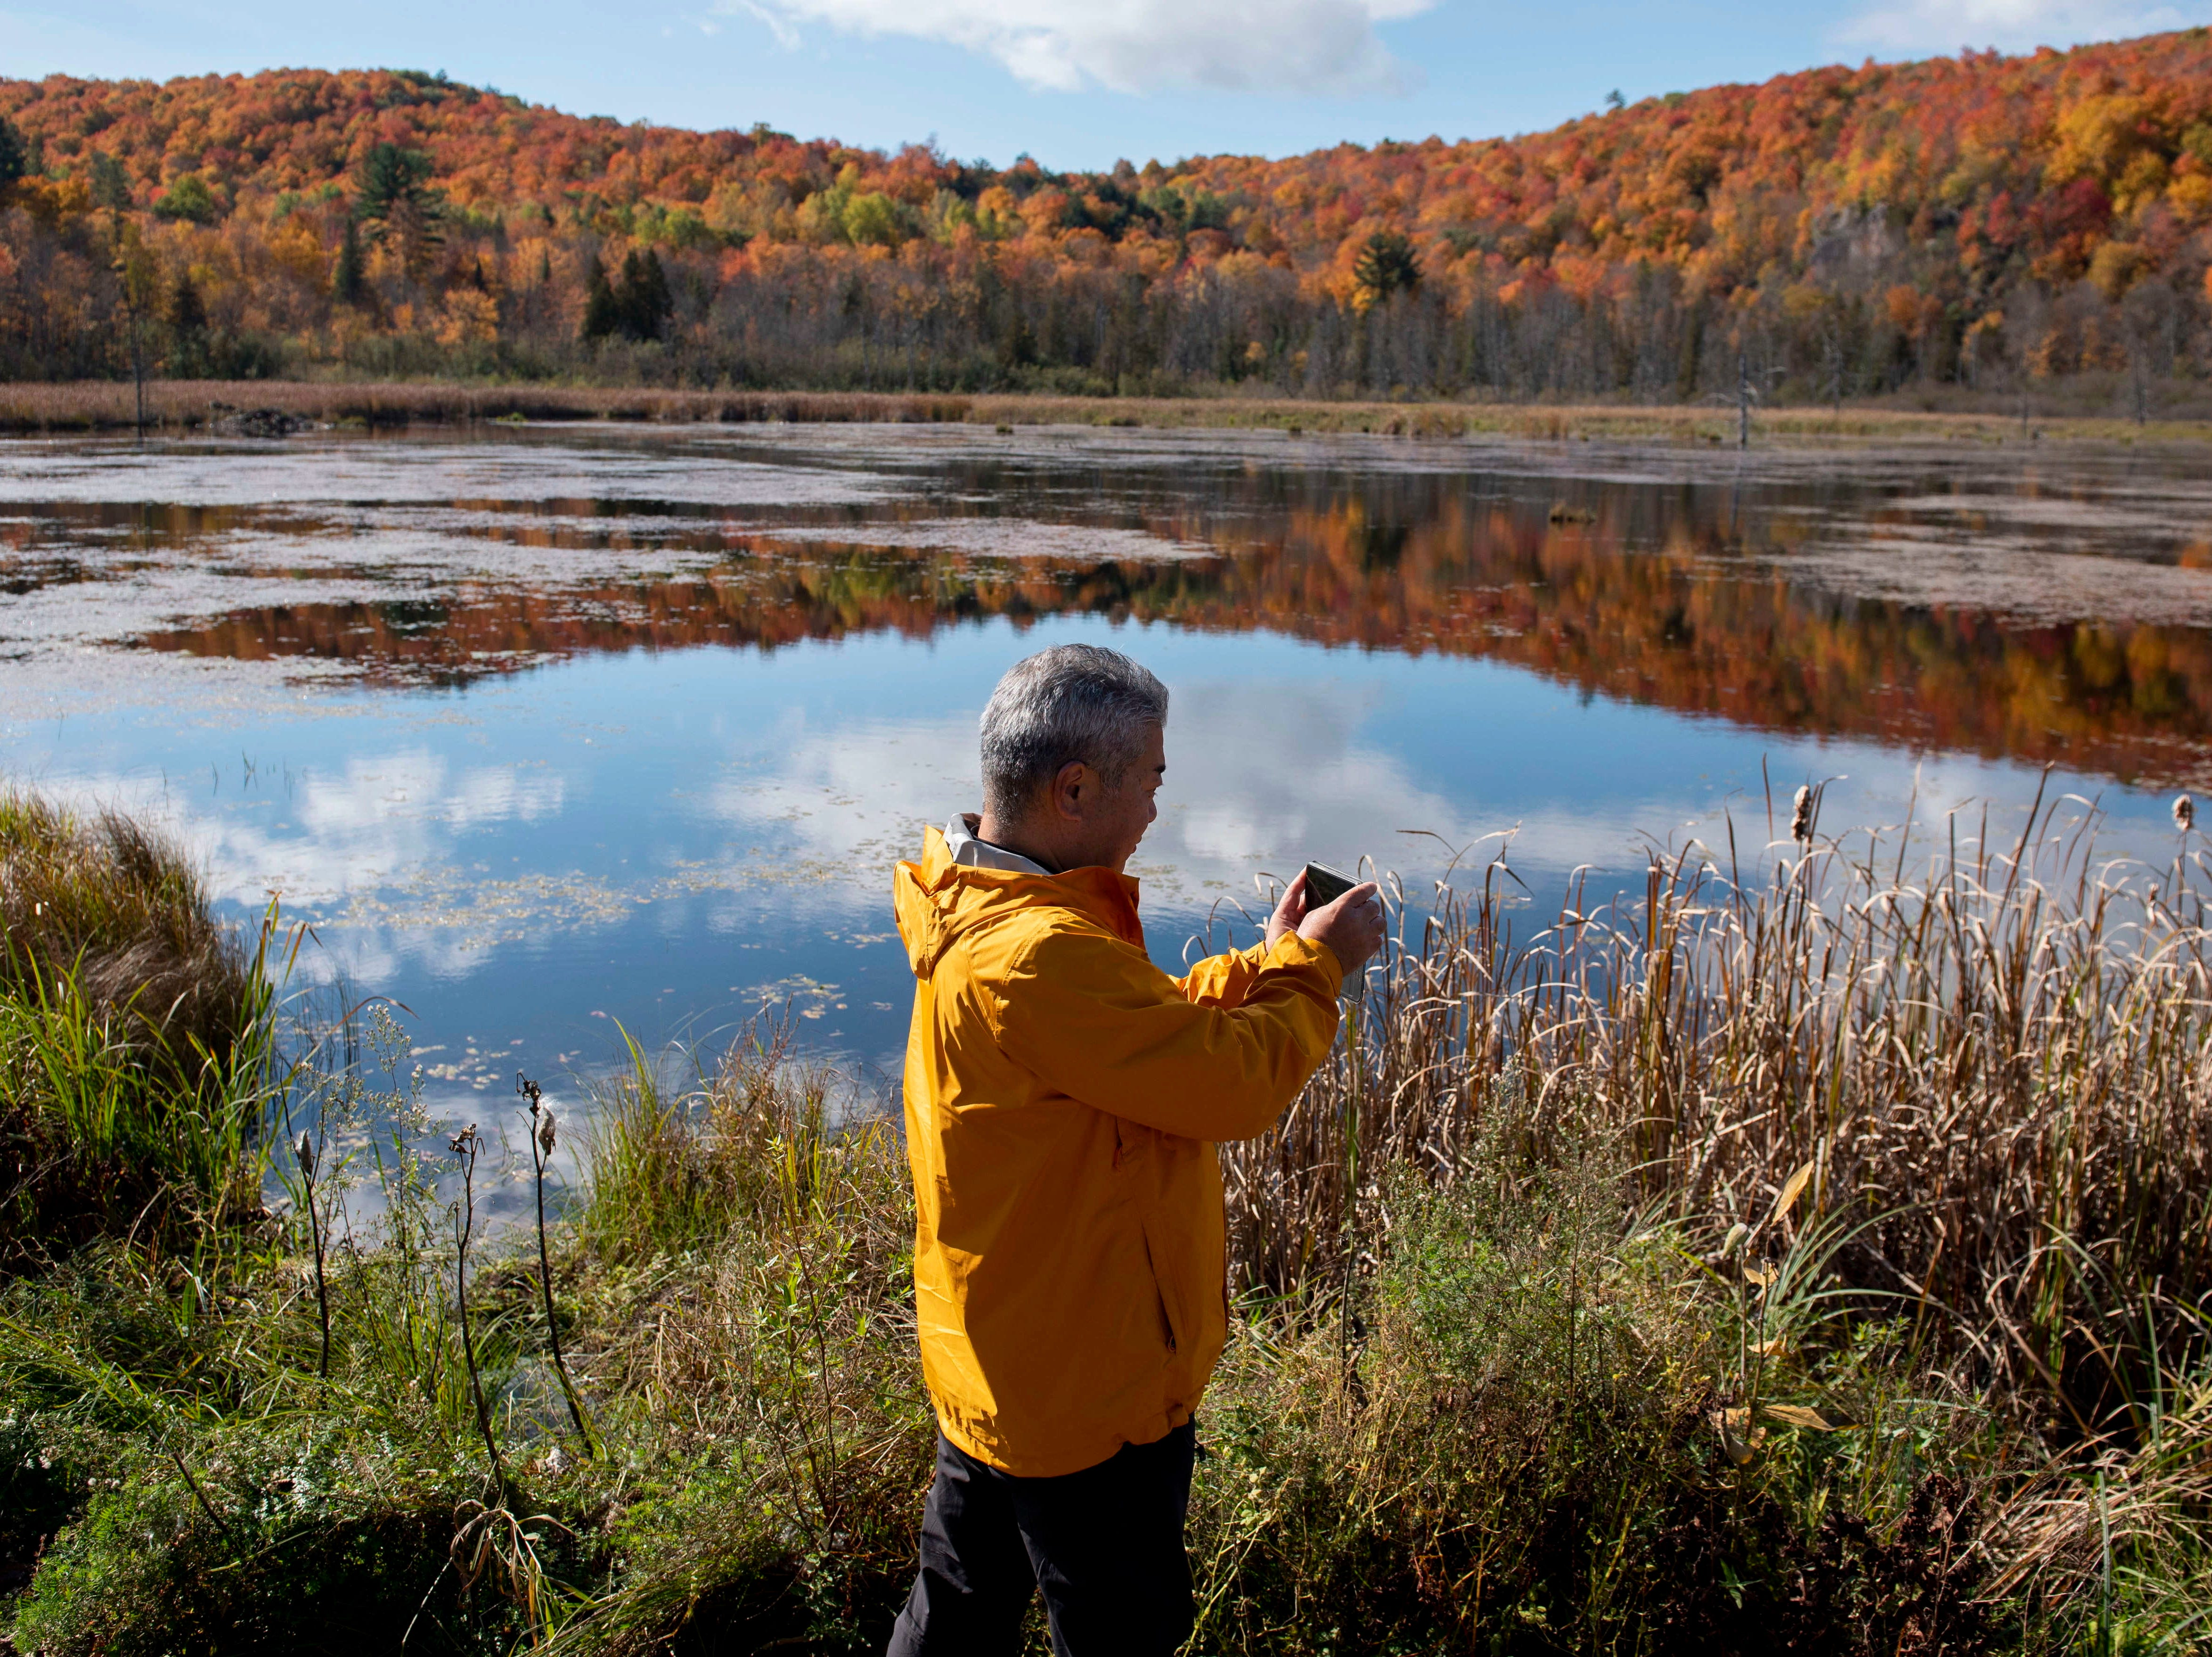 Seishi Tokuoka takes photos of the fall colors in Gatineau Park in Chelsea, Quebec, on Sunday, Oct. 14, 2018.